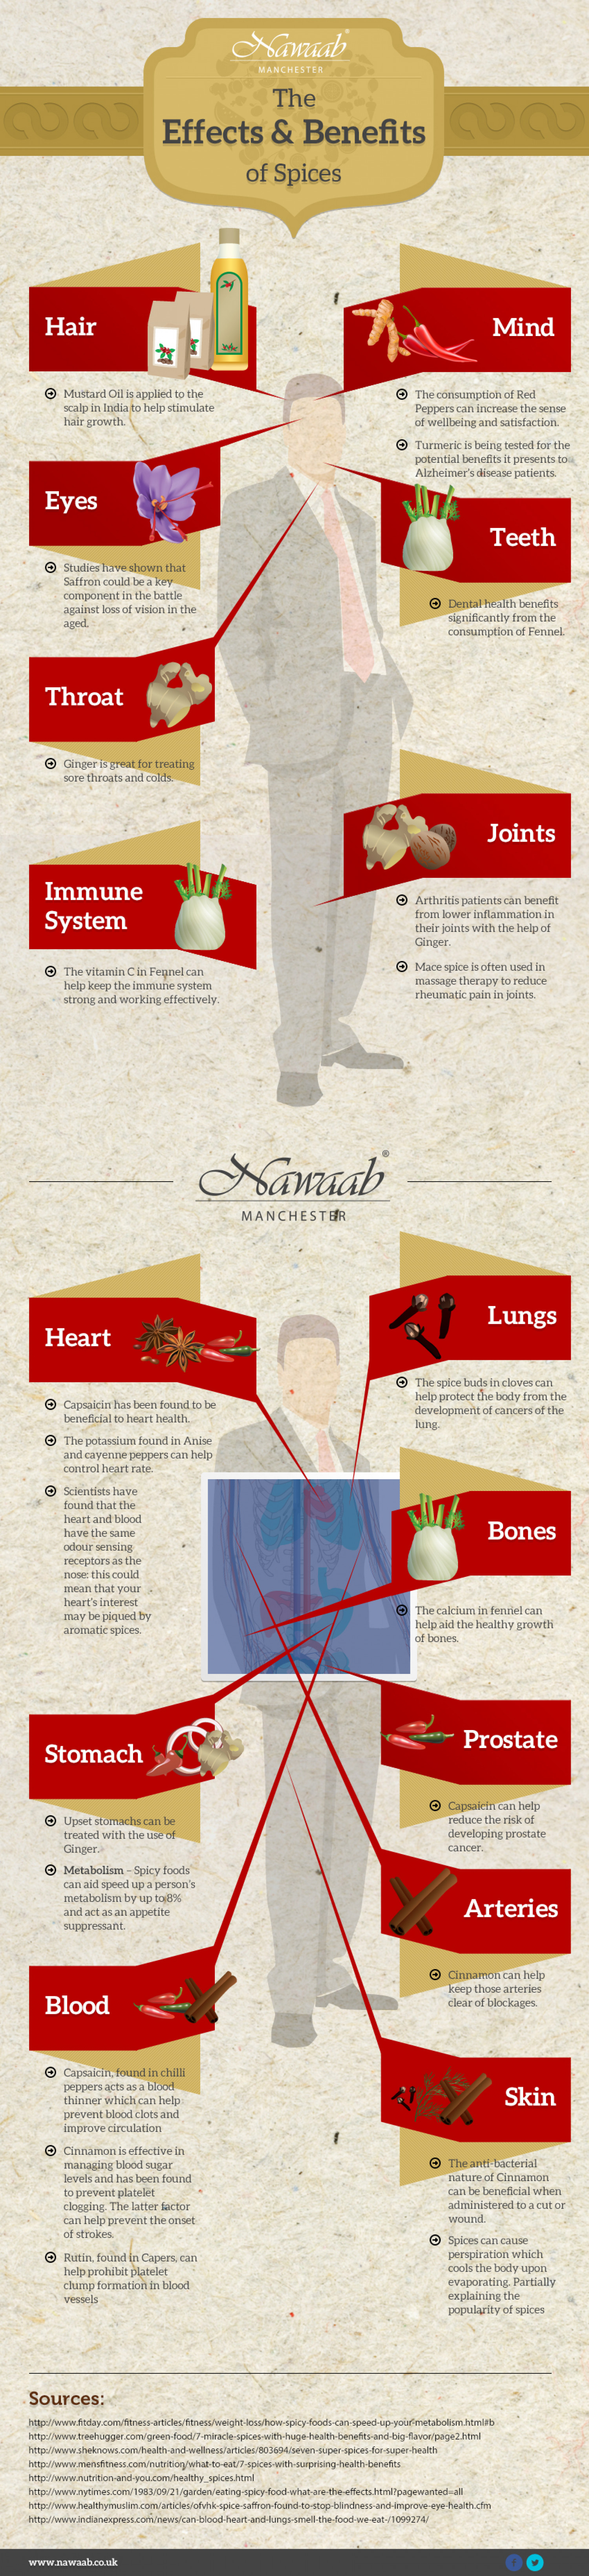 Indian Restaurant reveals the full Effects and Benefits of Spices in Food Infographic